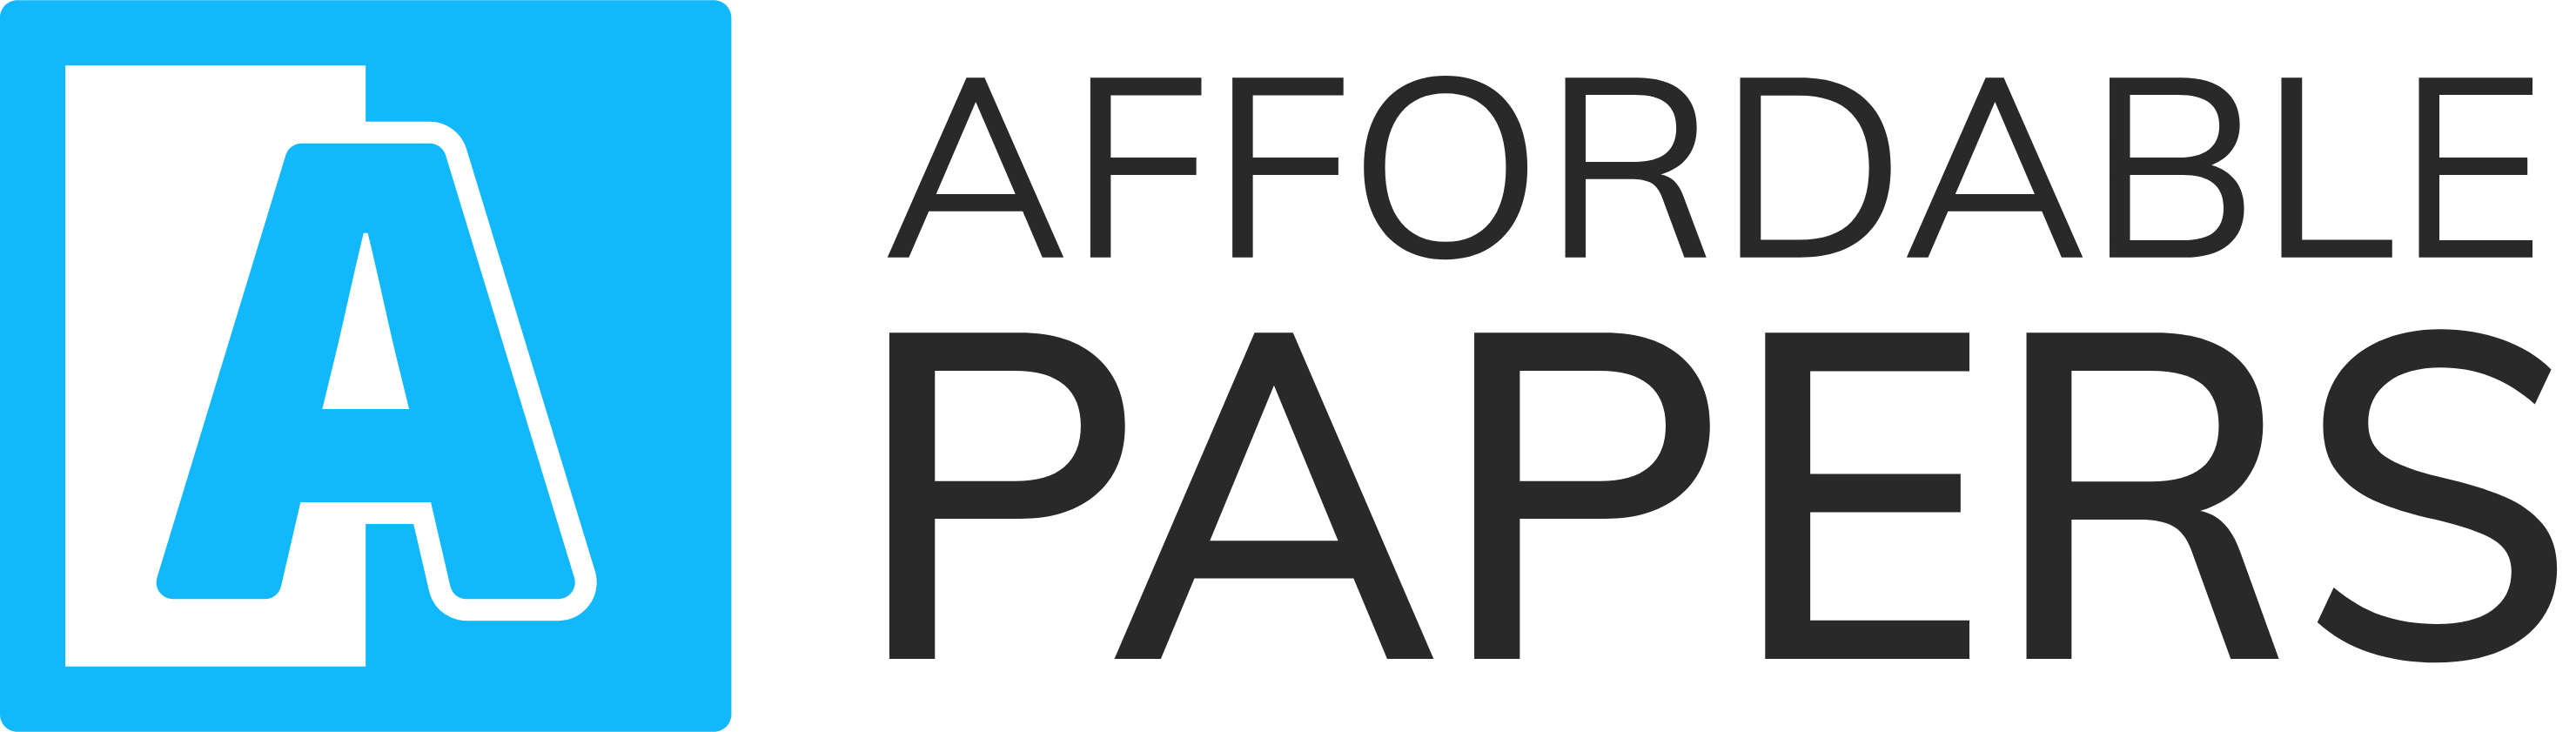 Affordable-Papers.net Added New Features to Improve Its Assistance